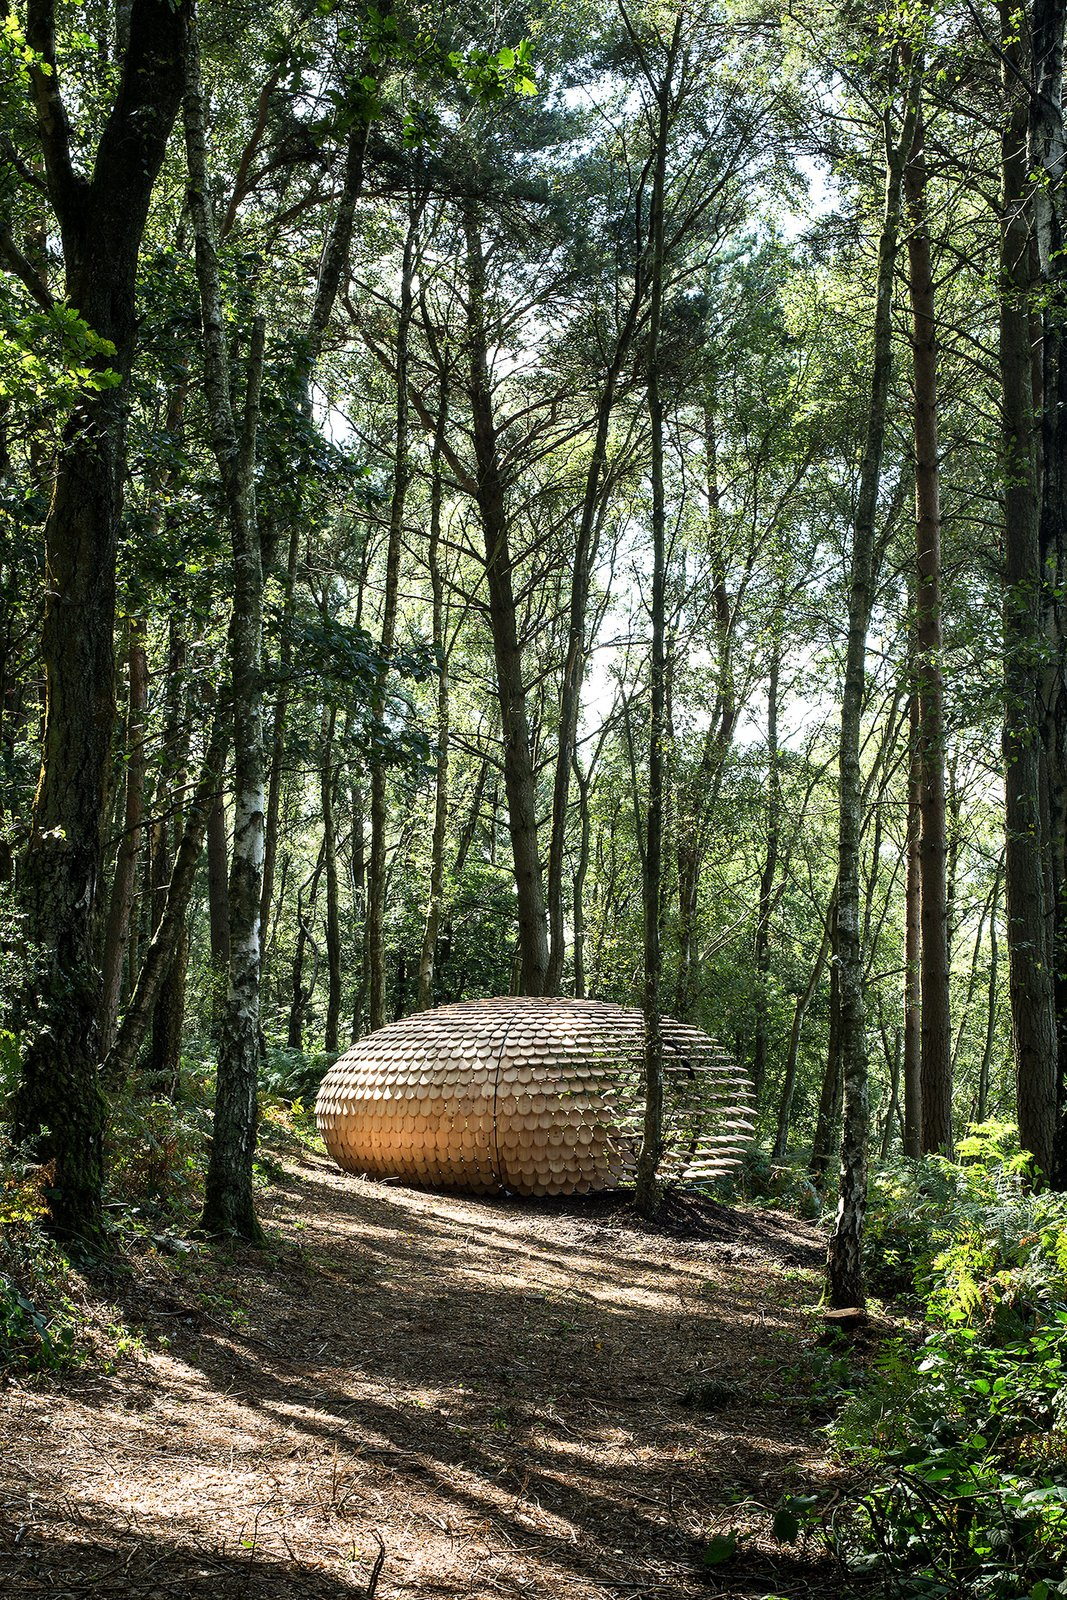 Photo 5 of 6 in An Organic Cedar Wood Pavilion Filled With Meaning